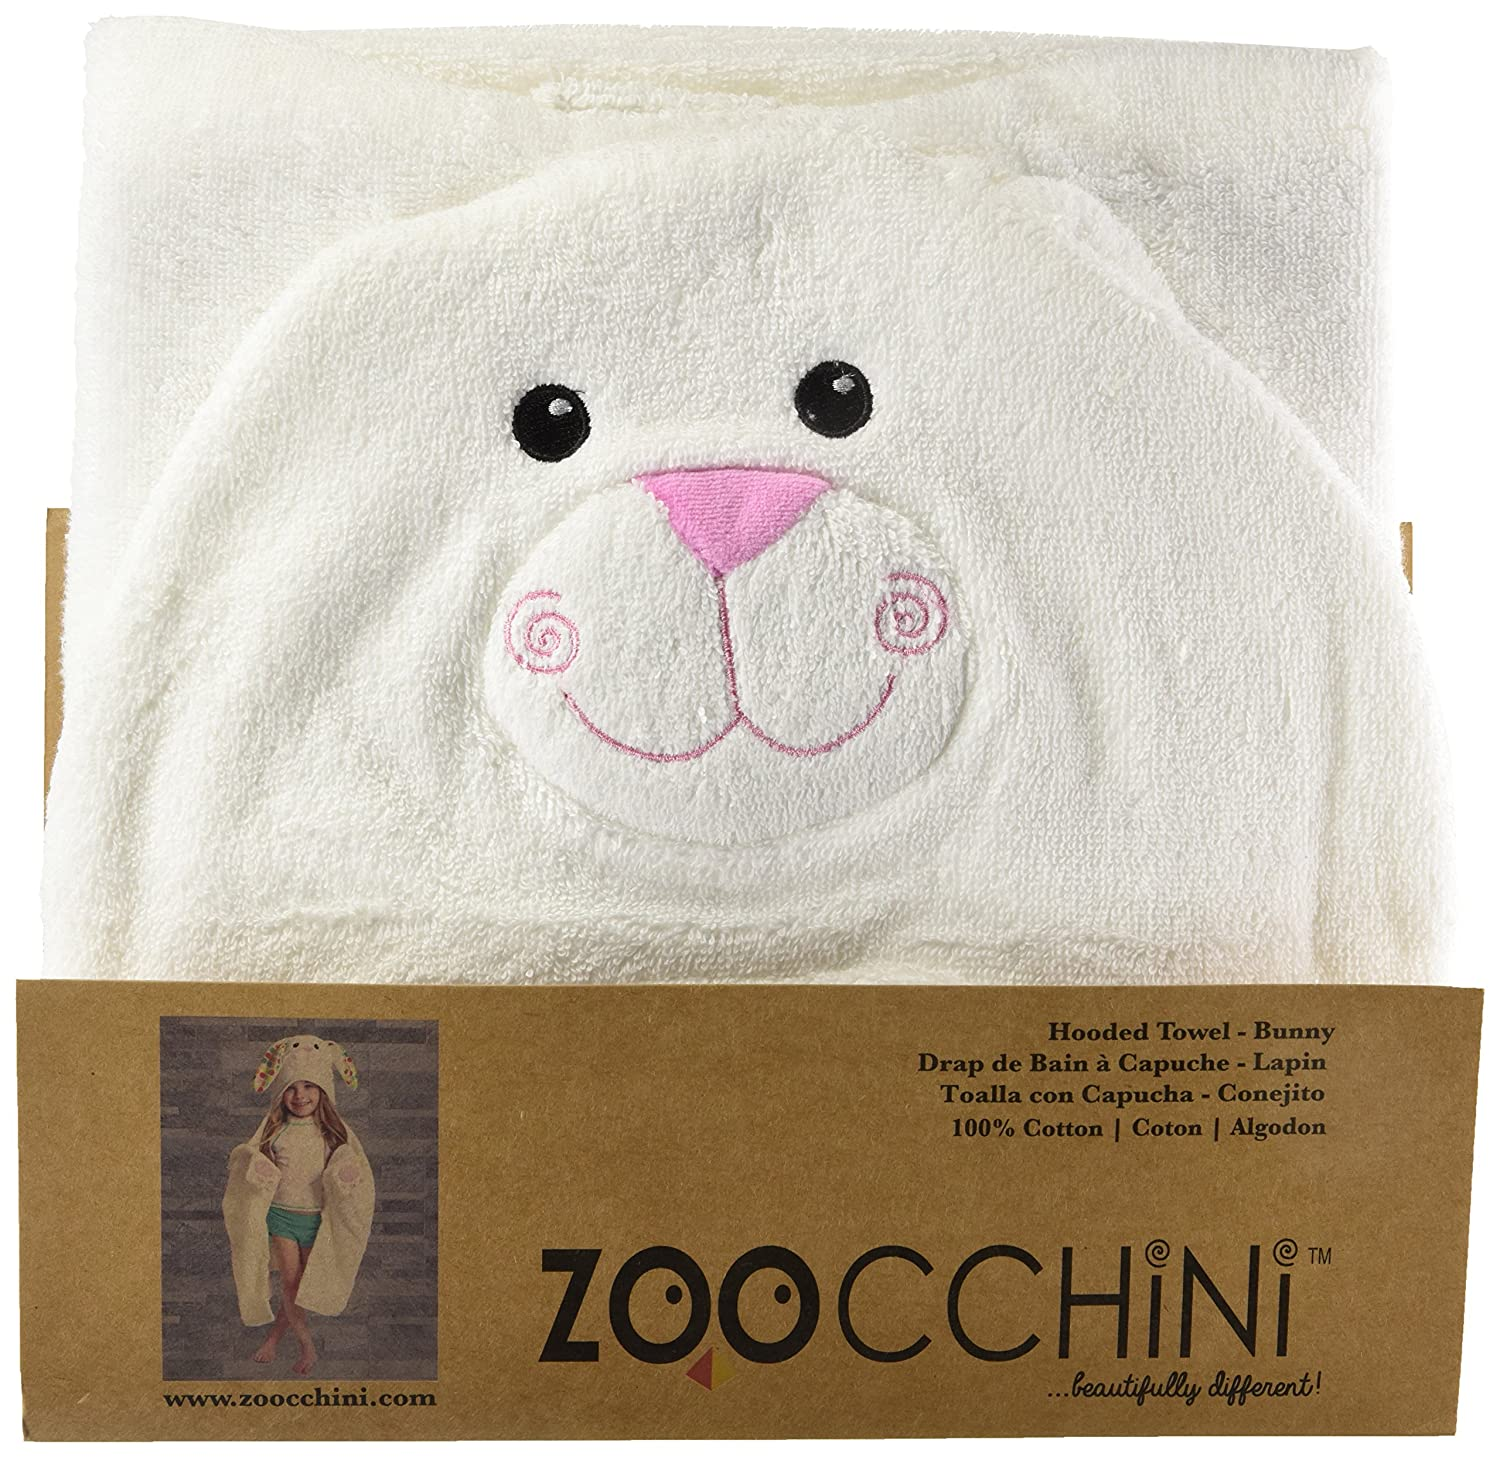 Amazon.com: ZOOCCHINI Hooded Towel, 50 inches x 22 inches, 100% Cotton Plush Terry, Toddlers and Kids, Great for Bath, Pool, and Beach! (Bunny White): Baby